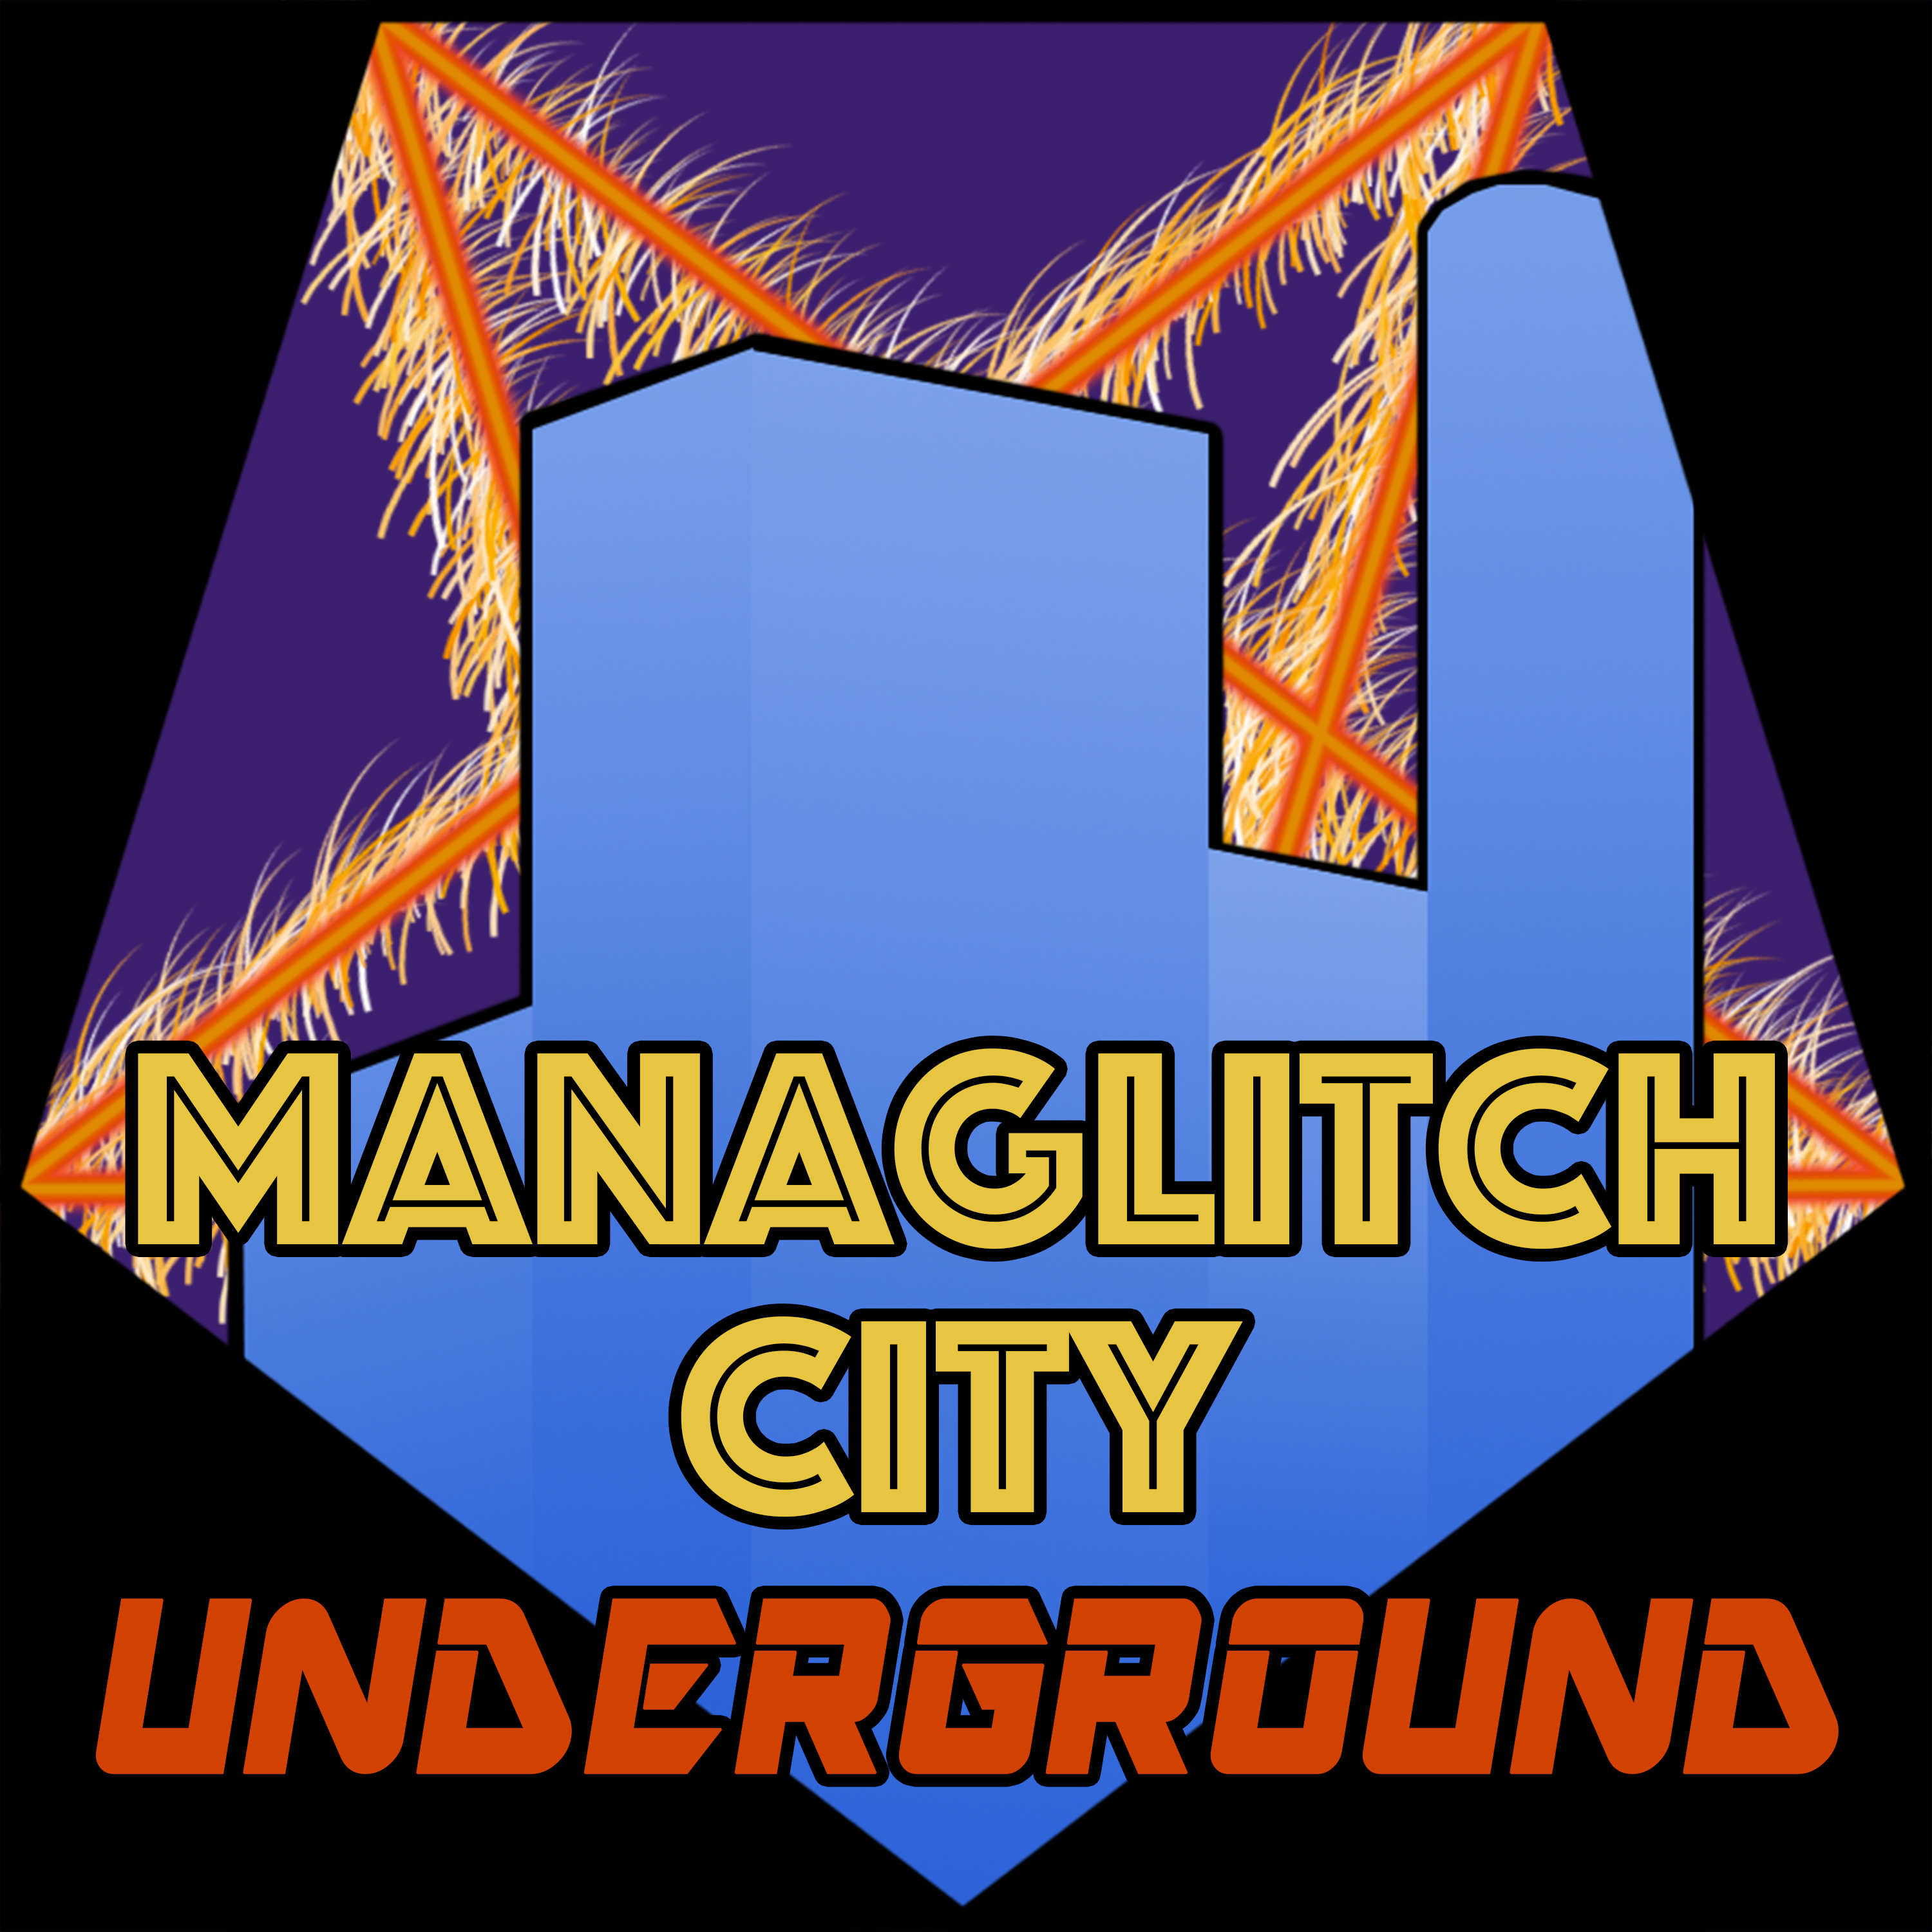 Managlitch City Underground